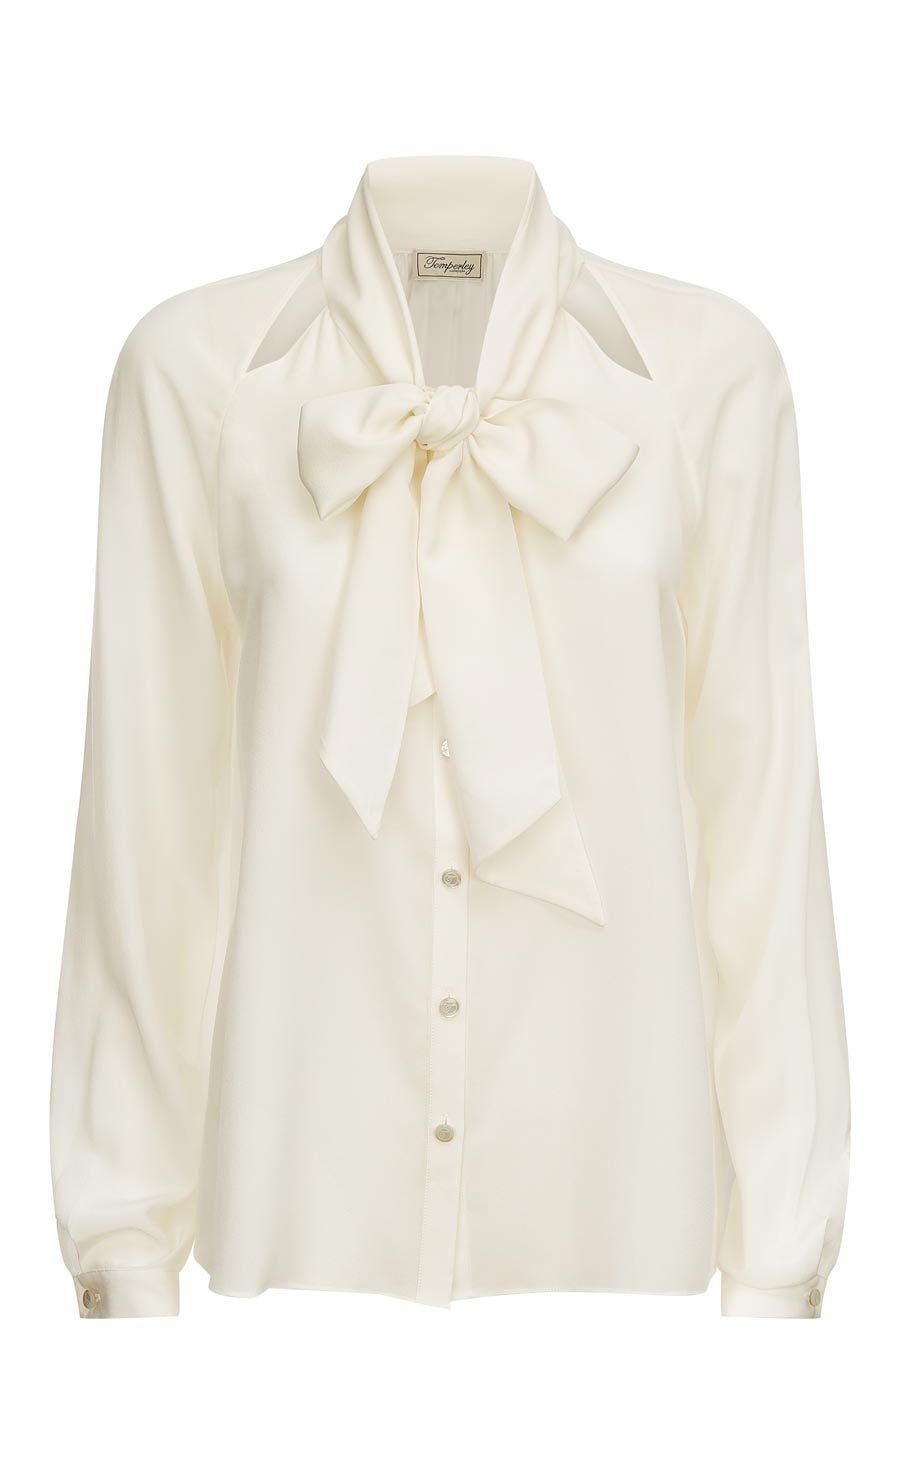 Purity Bow Shirt, White